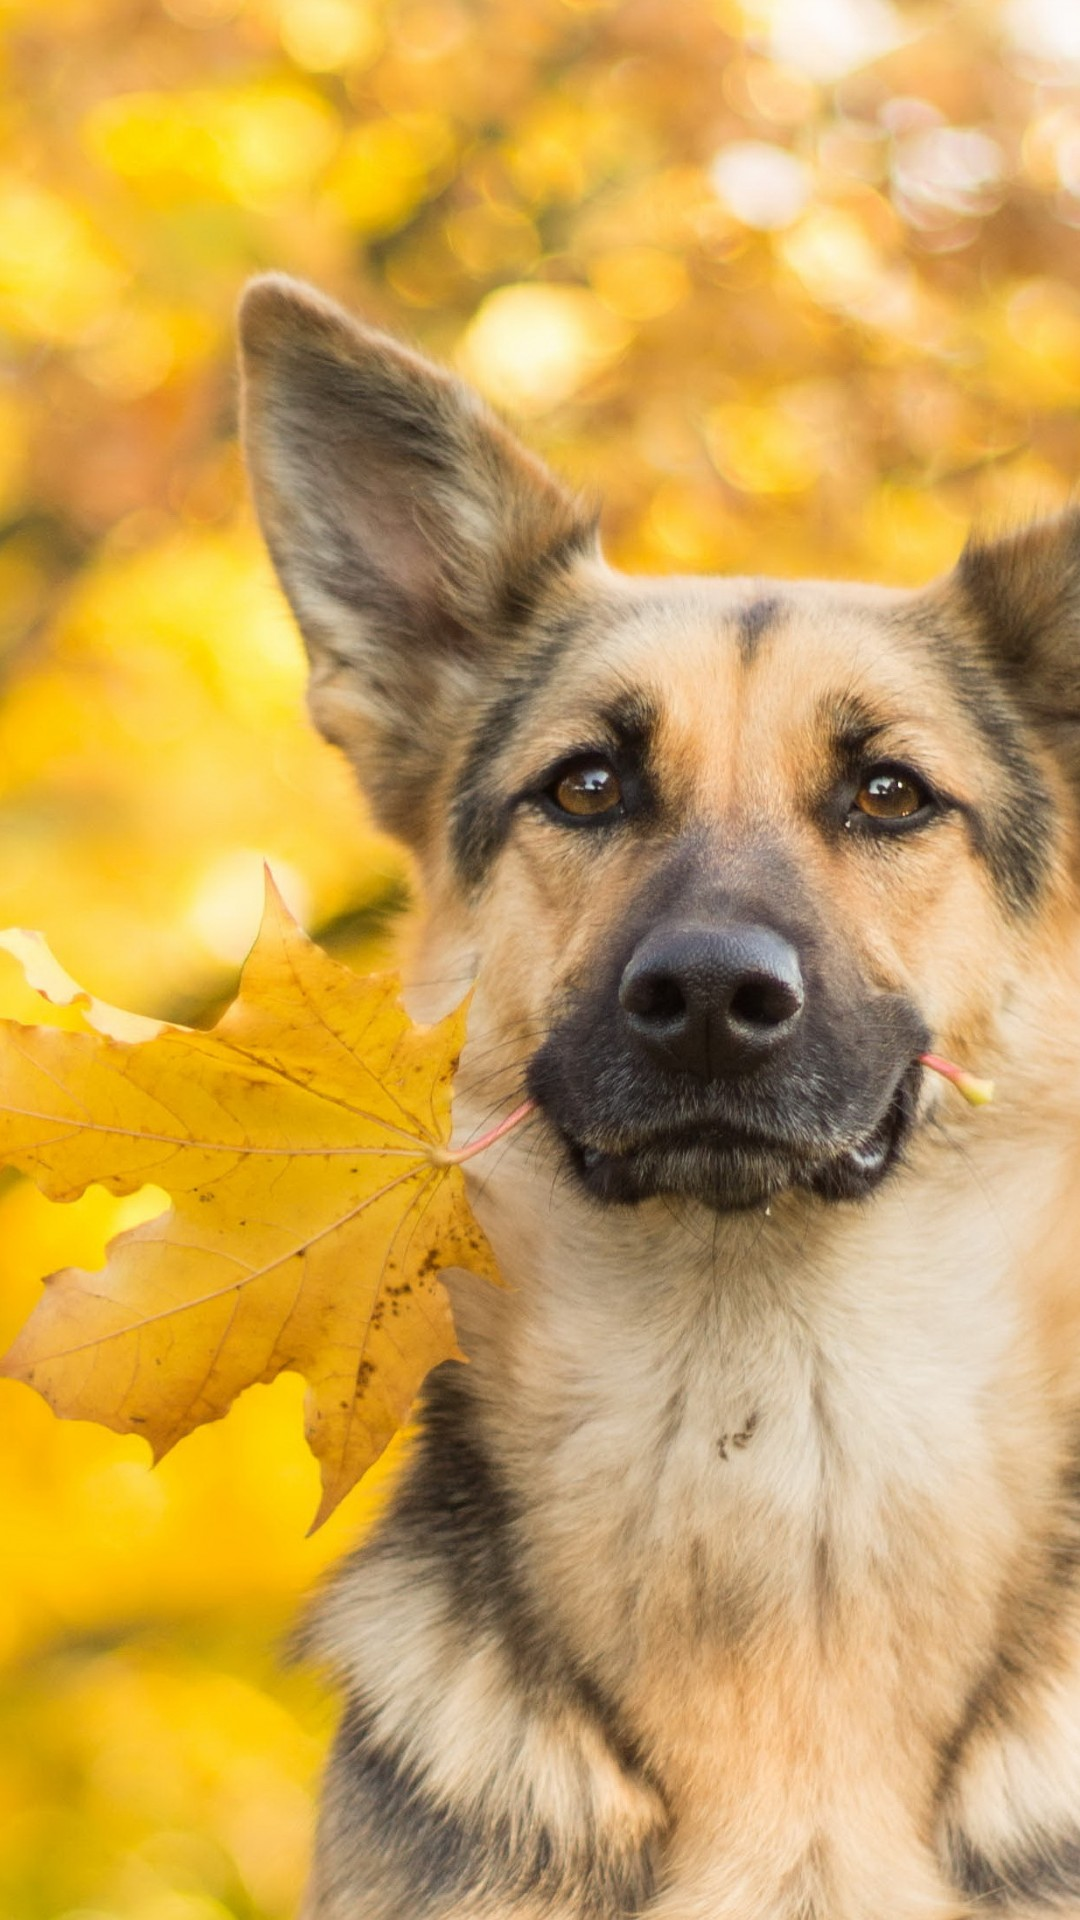 Cute Dog Wallpapers With Quotes Wallpaper Dog Cute Animals Leaves Autumn 4k Animals